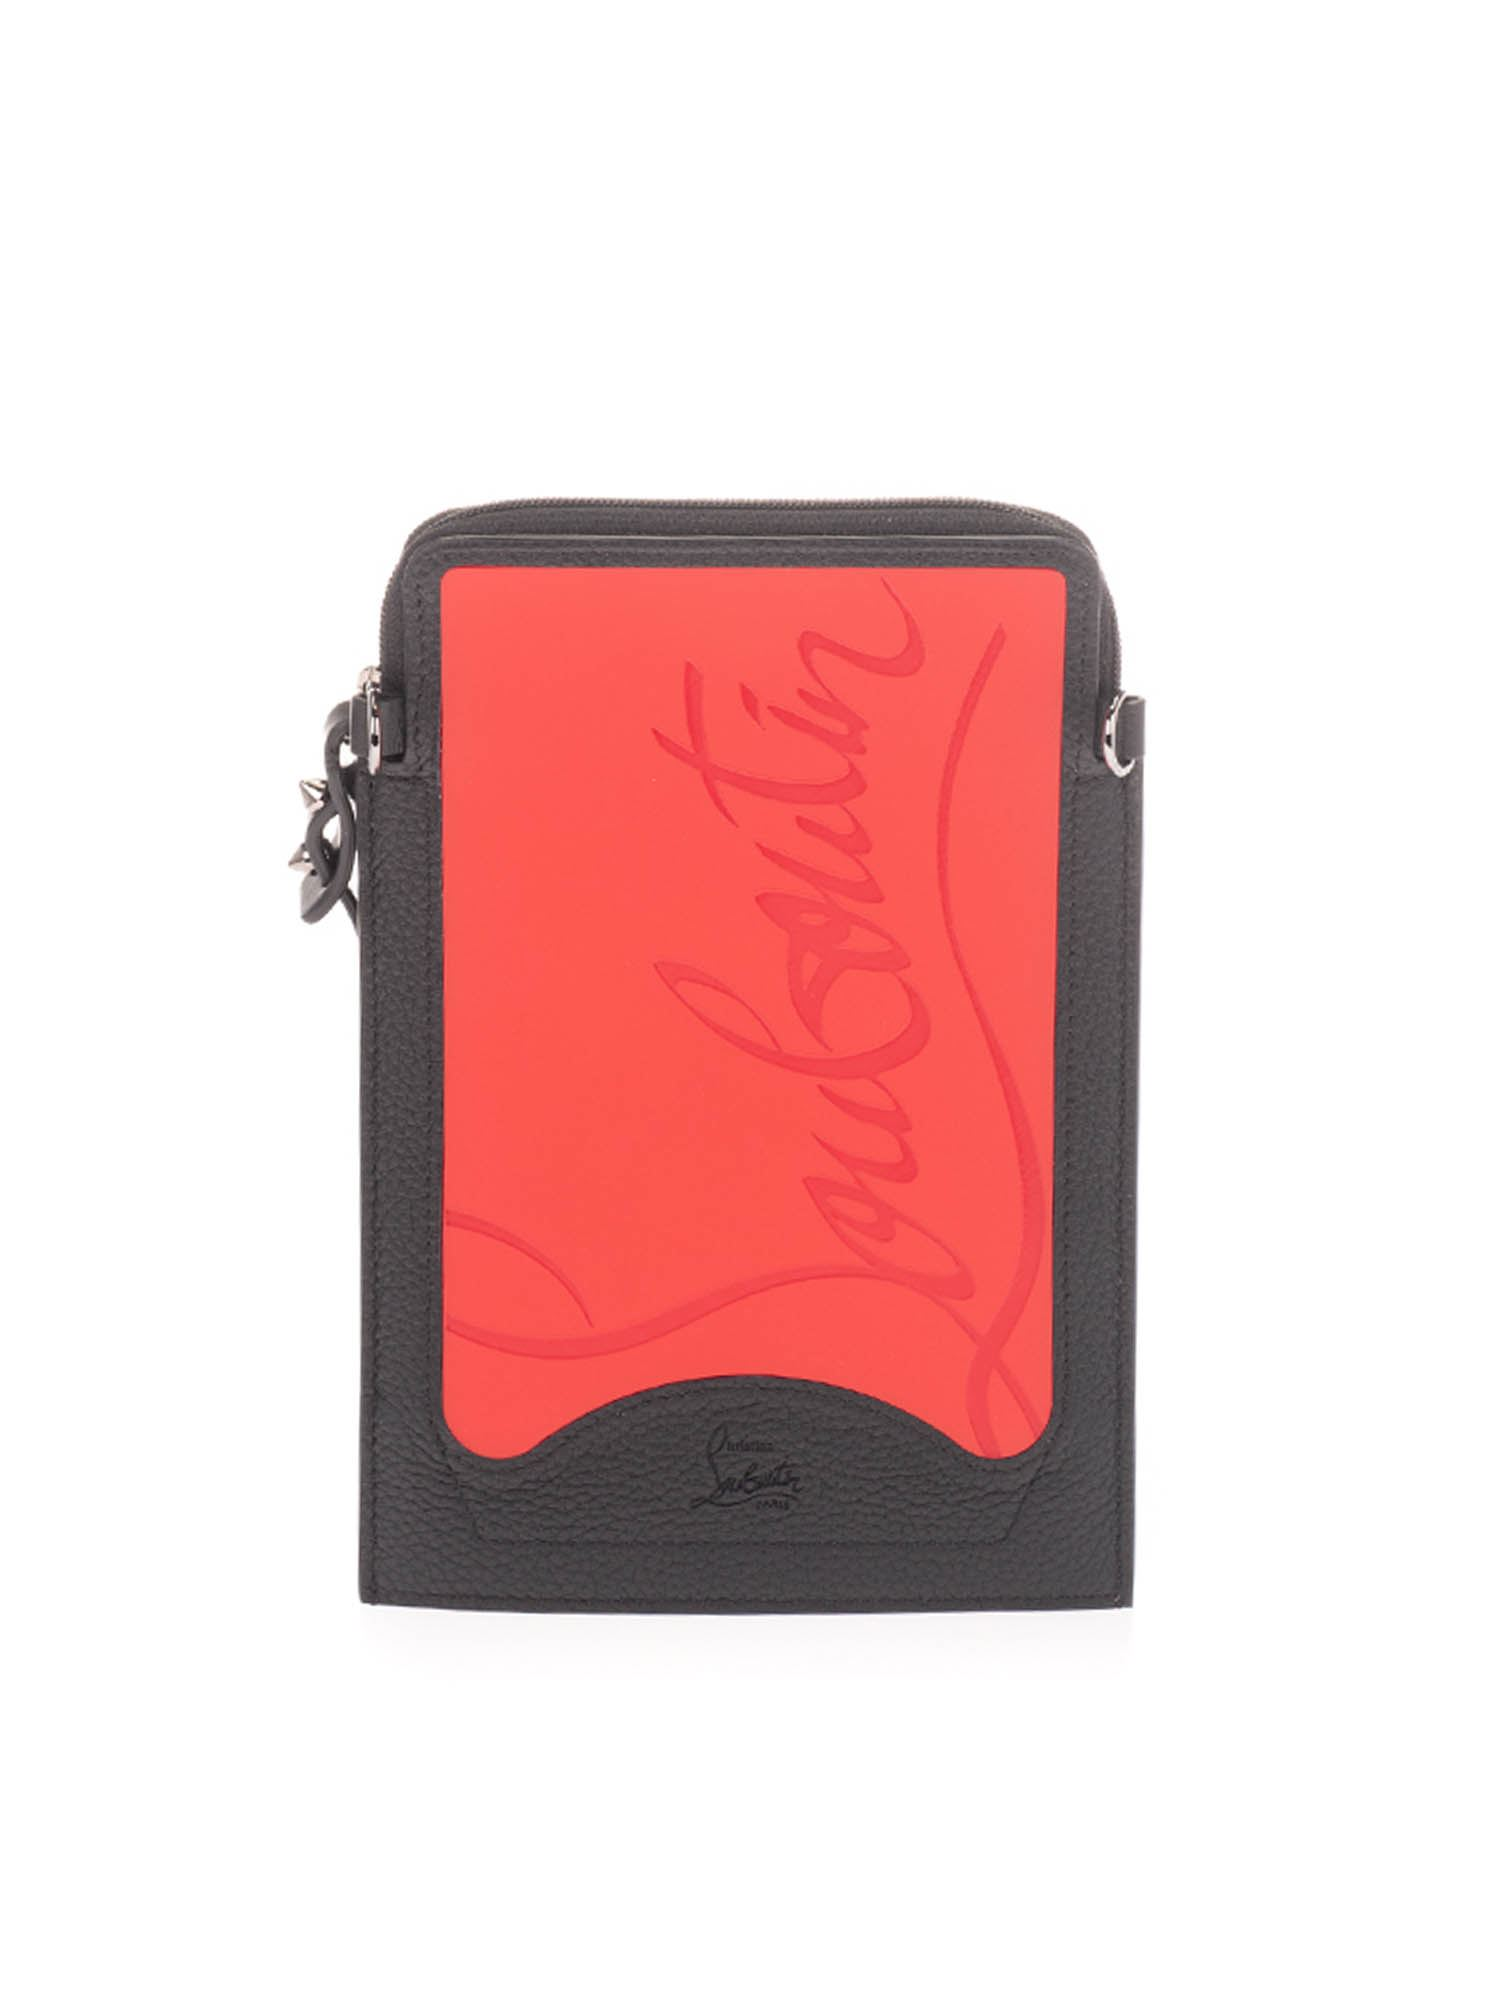 Christian Louboutin LOUBI PHONE CASE IN RED AND BLACK